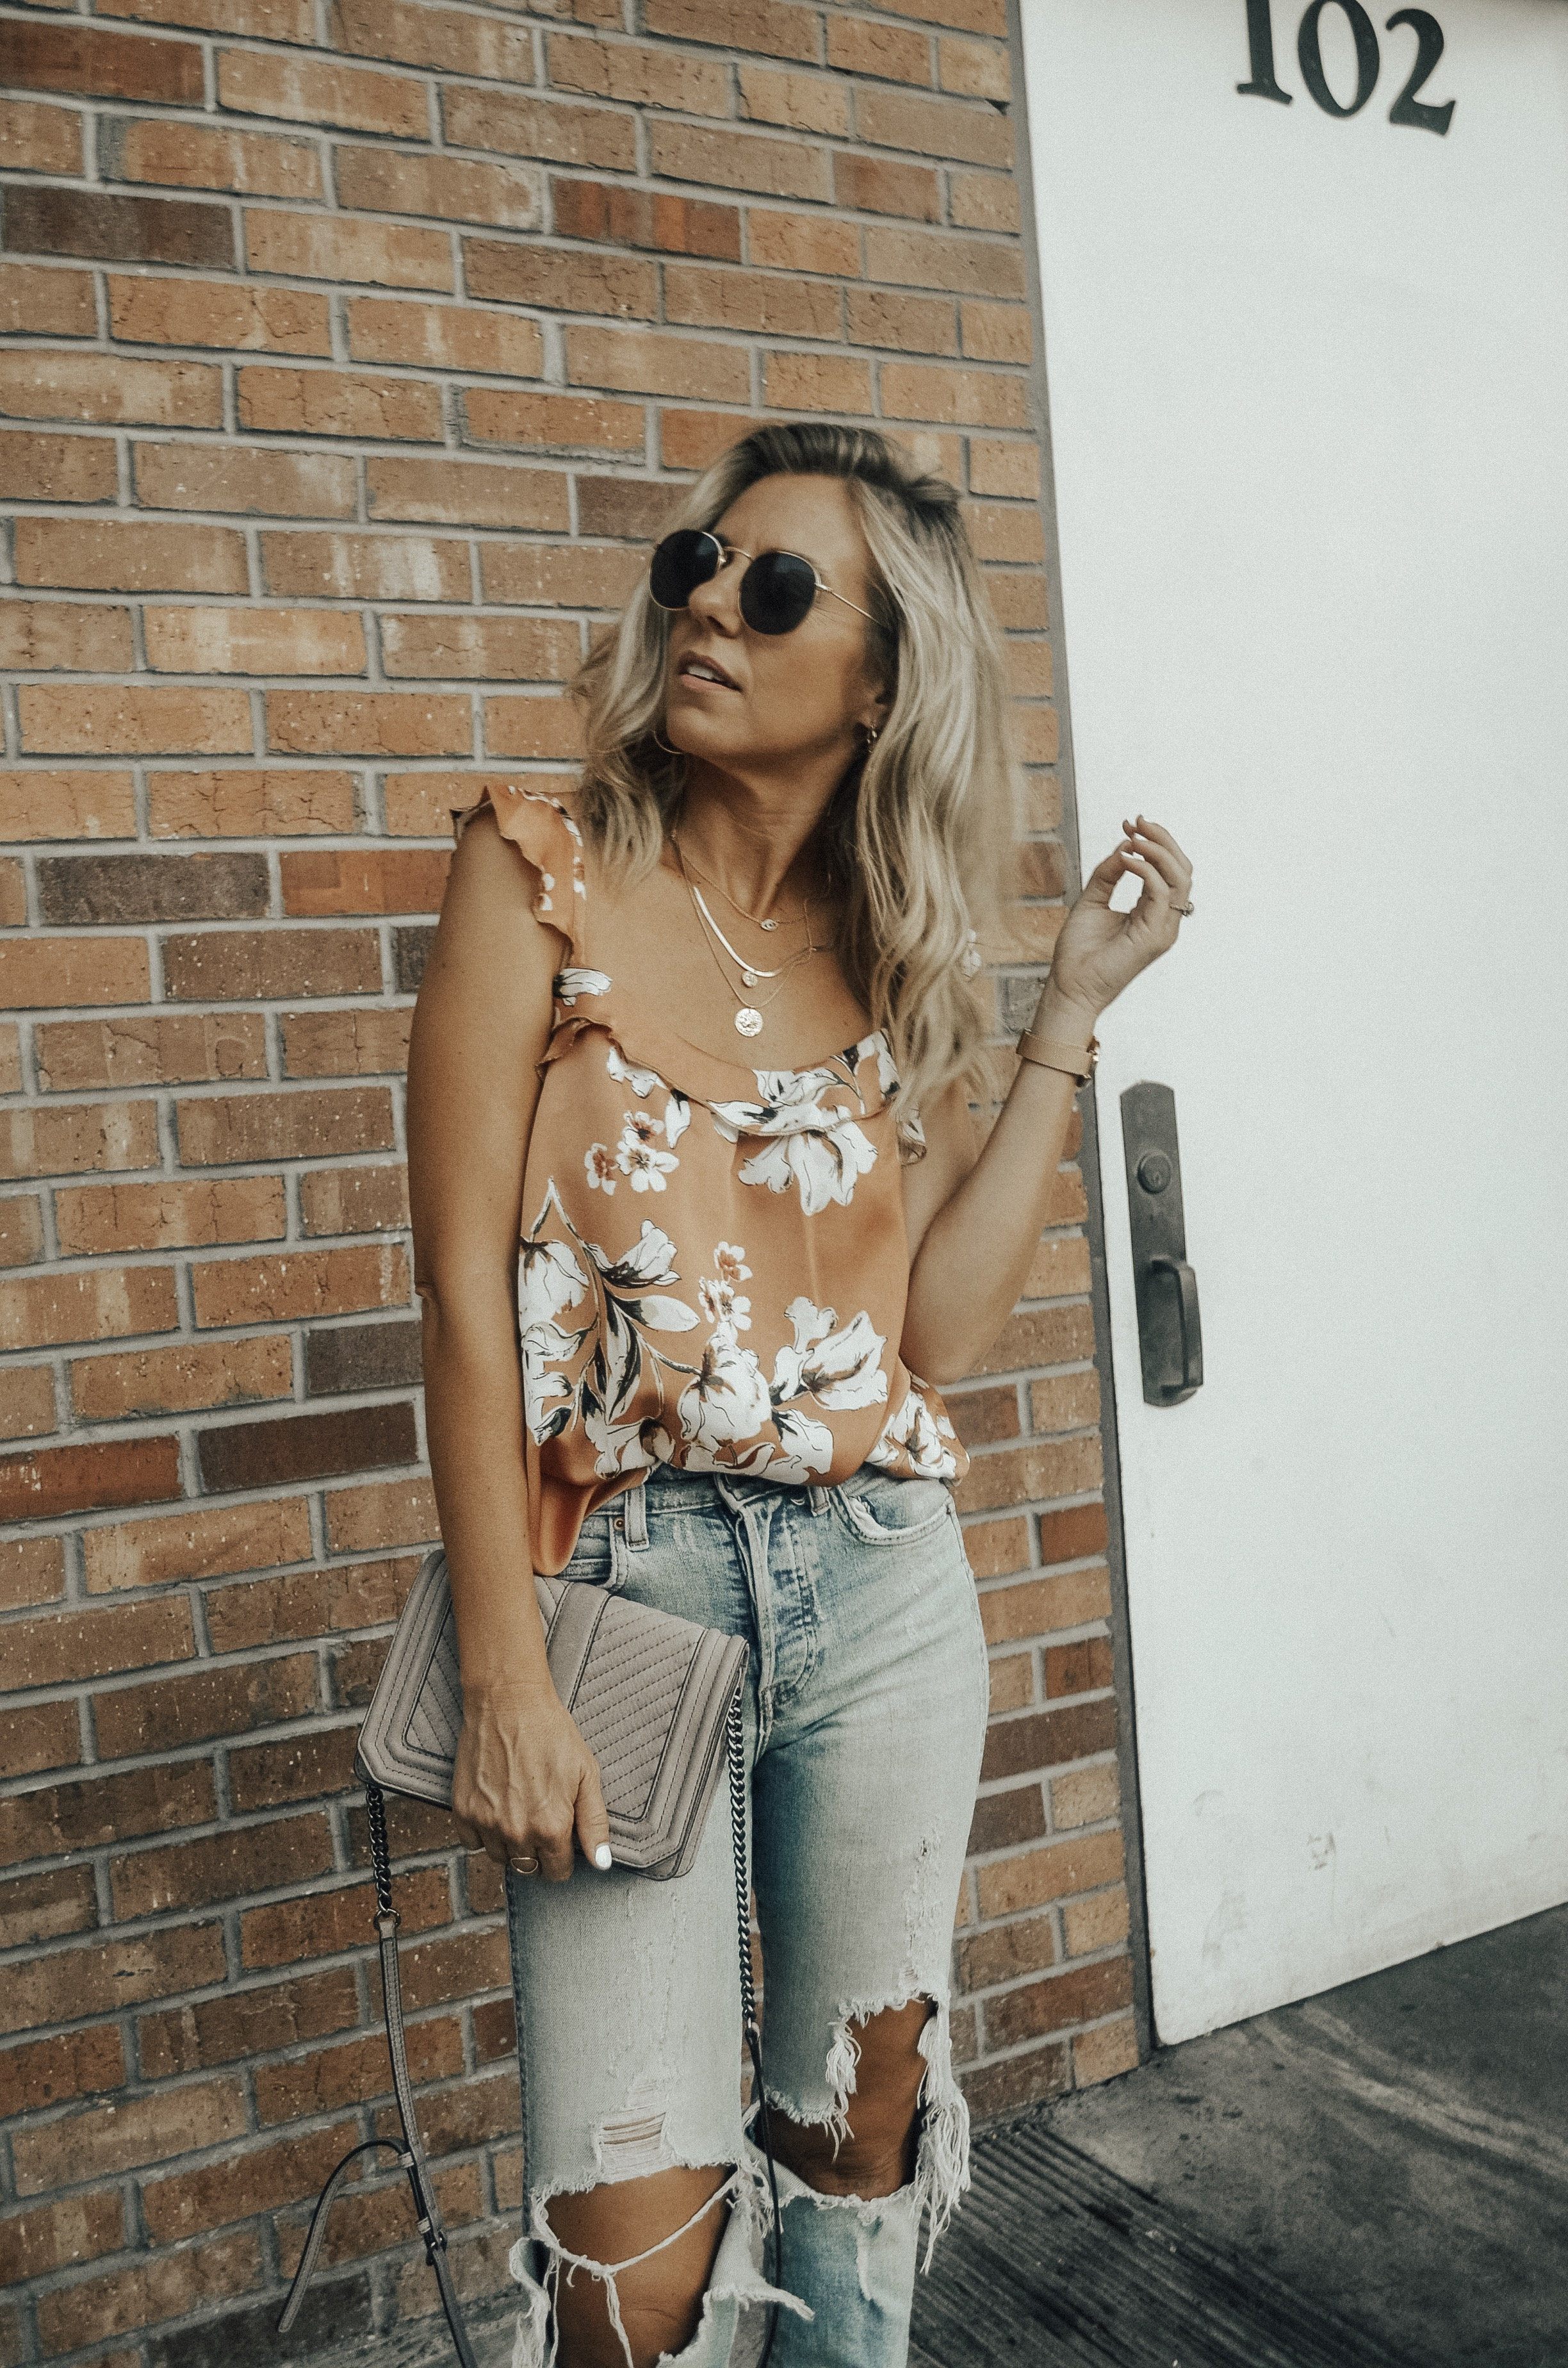 MATCHING SETS WITH BISHOP + YOUNG - Jaclyn De Leon Style + floral tank top + distressed denim + bohemian + Rebecca Minkoff handbag + fall outfit + summer style + casual street style + boho chic + Nordstrom + Zappos + Versatility of matching sets + mix and match + snakeskin studded mules